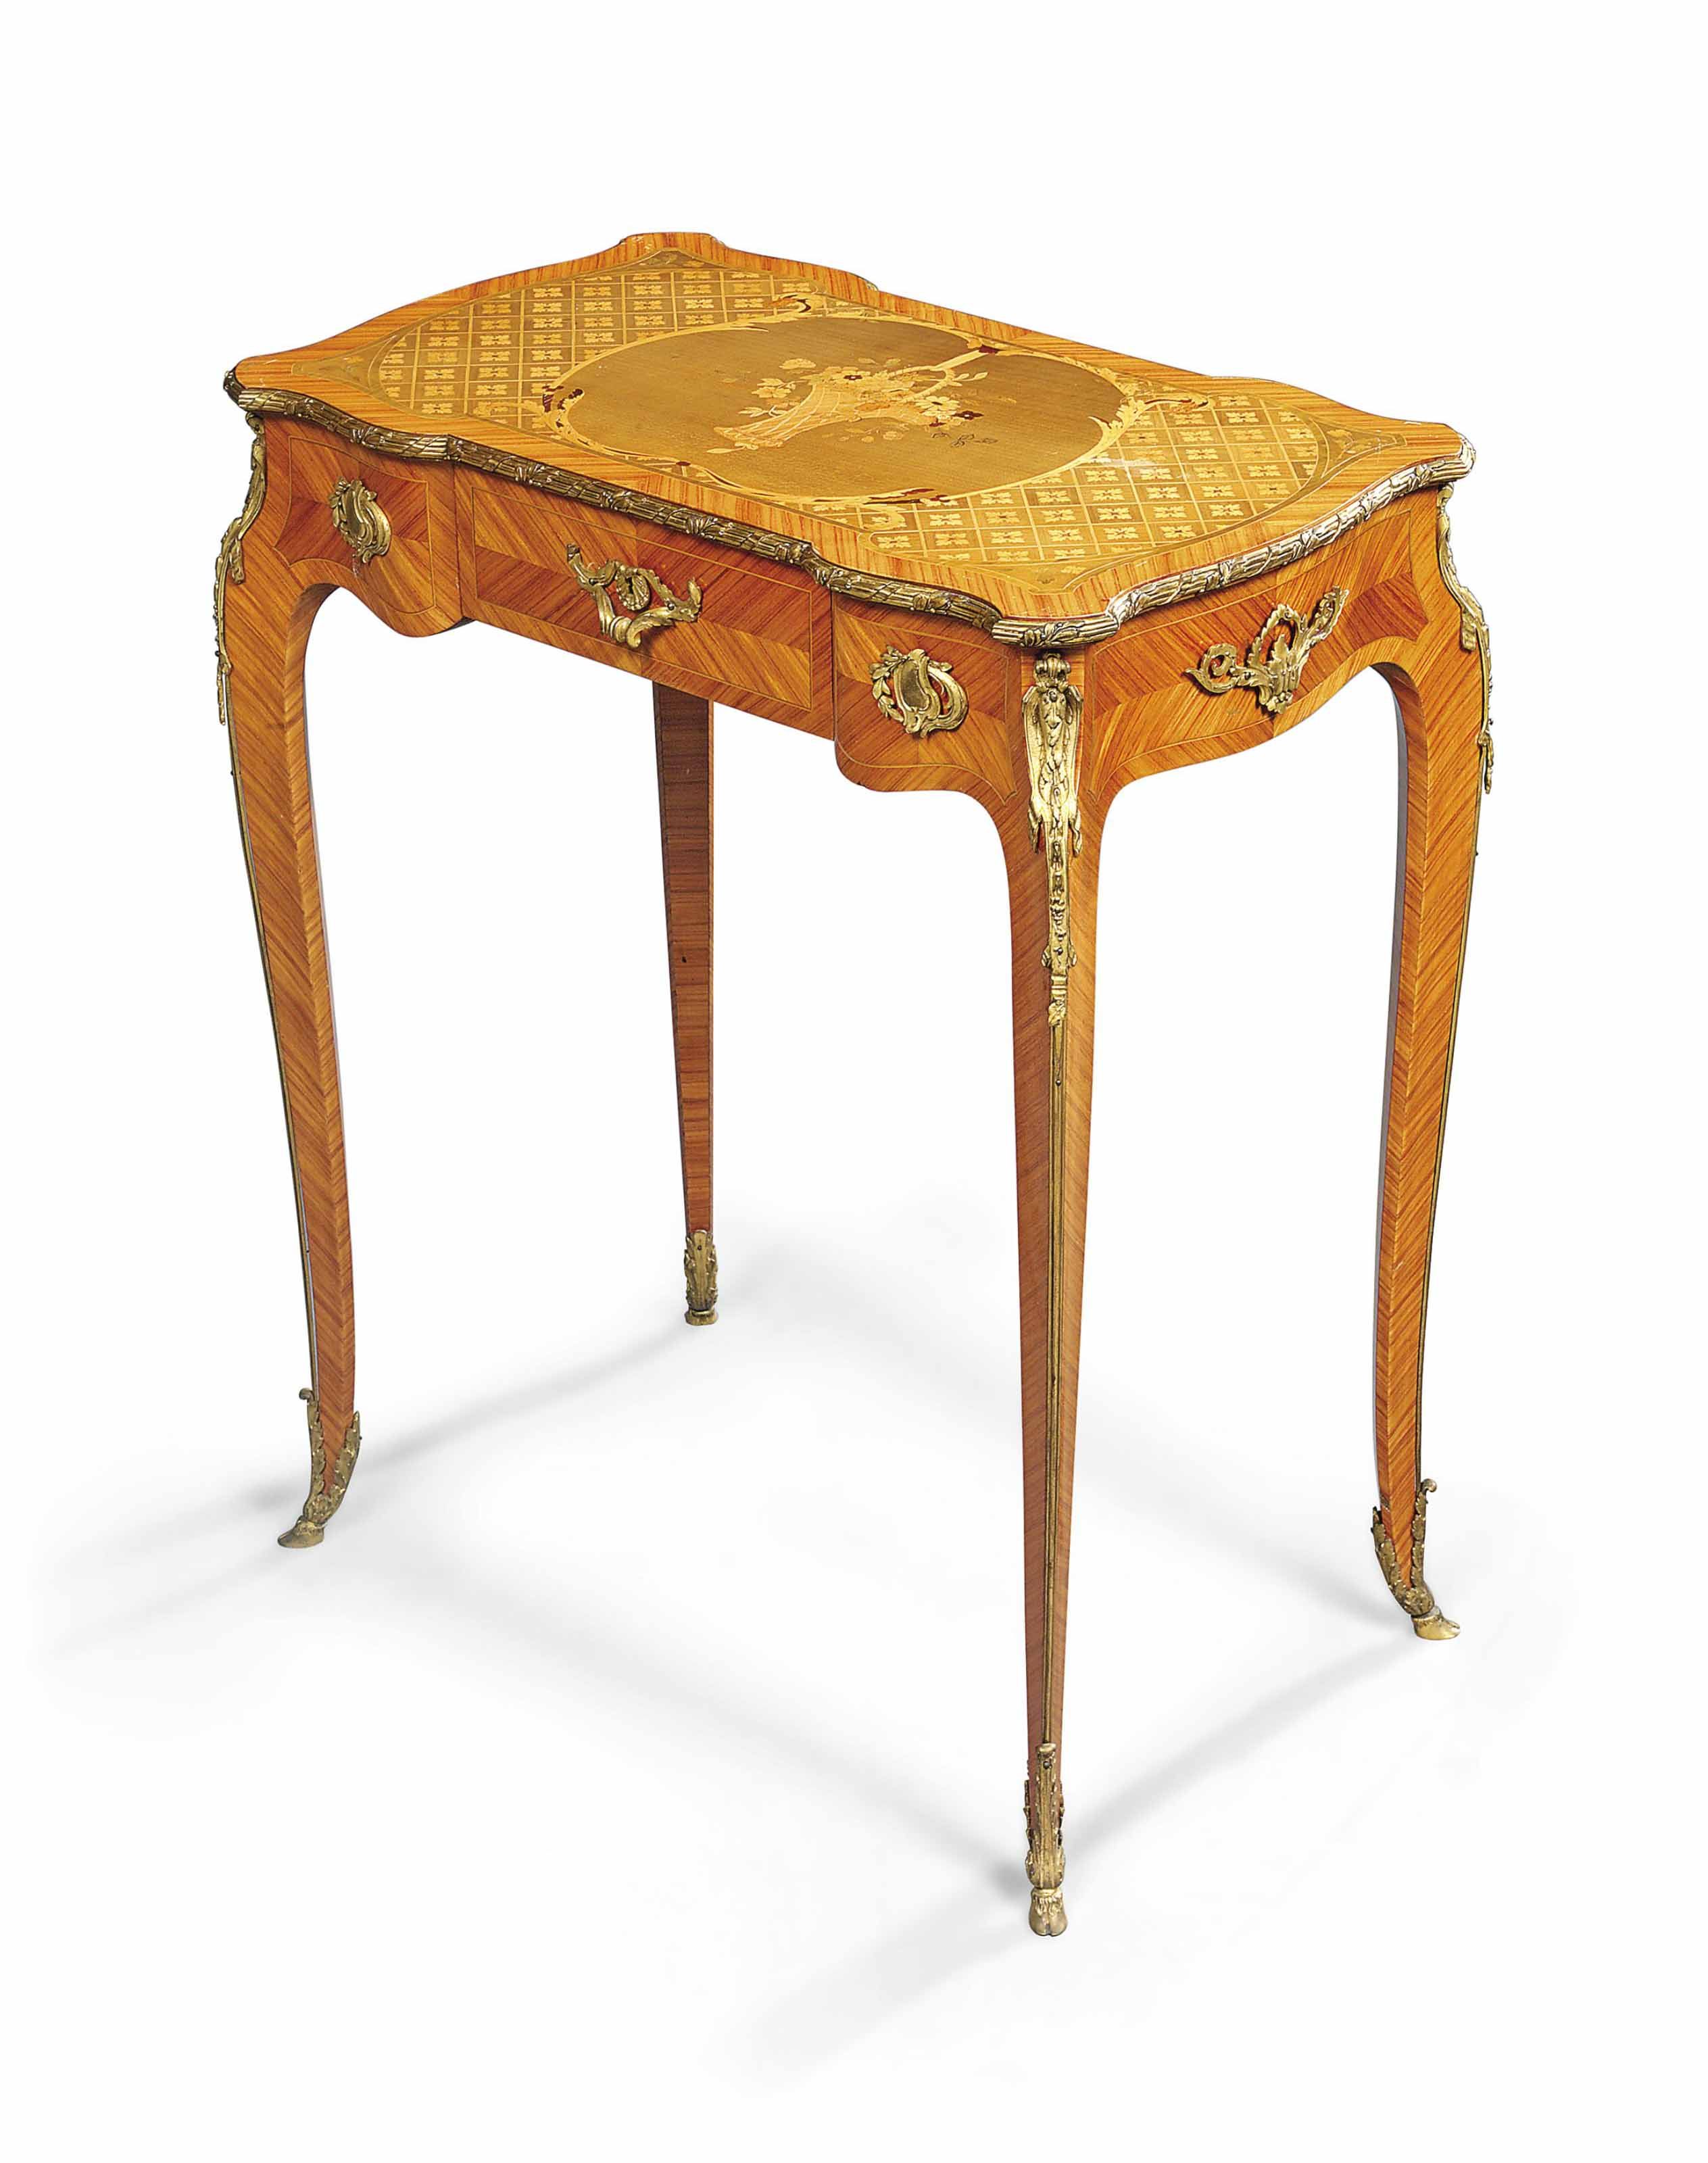 A FRENCH ORMOLU-MOUNTED TULIPWOOD AND FRUITWOOD MARQUETRY TABLE A ECRIRE